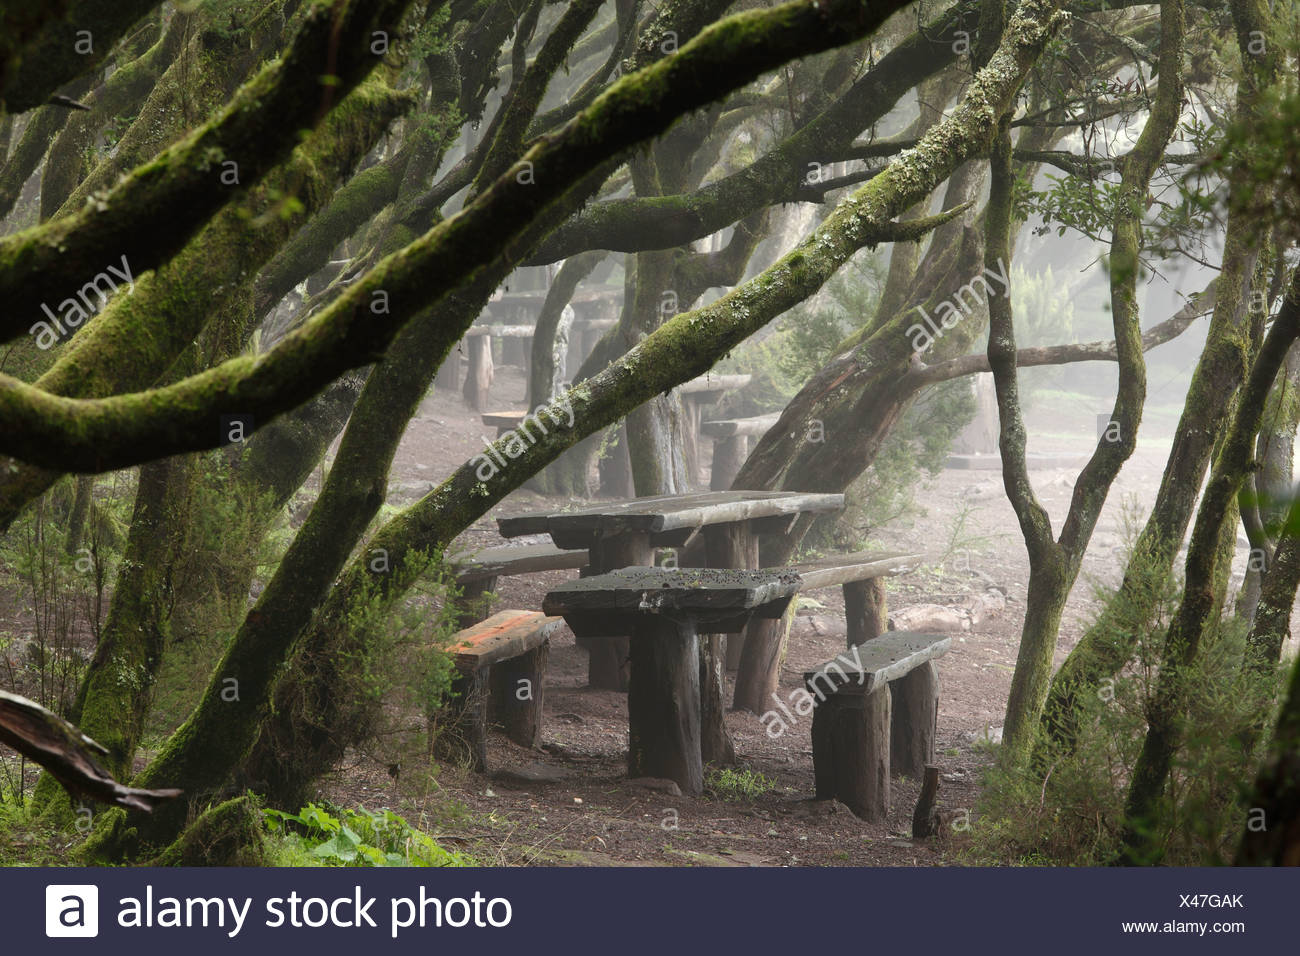 Laguna Grande resting place in a cloud forest, Garajonay National Park, La Gomera, Canary Islands, Spain, Europe - Stock Image